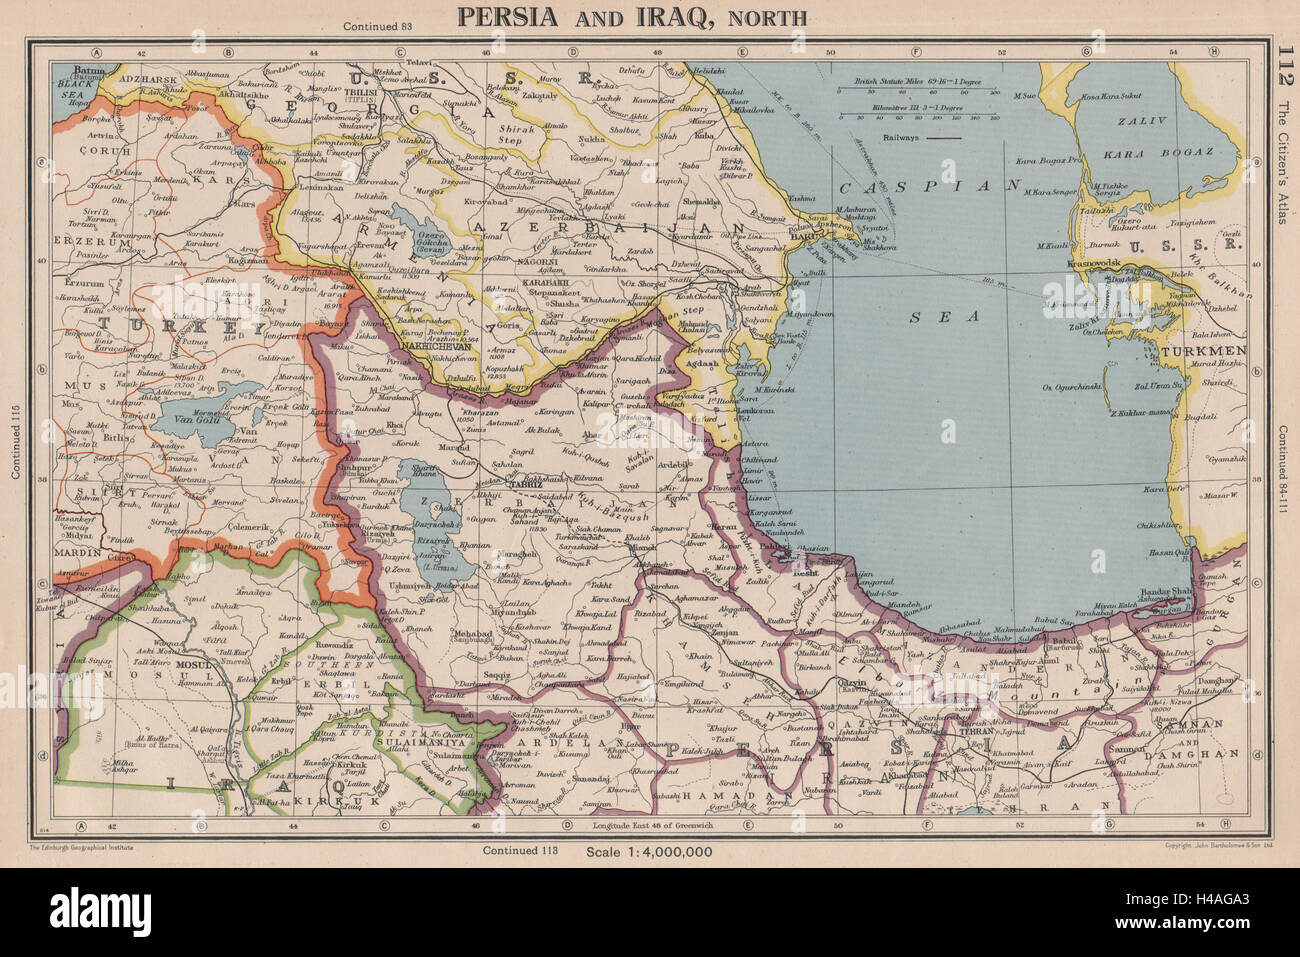 Southern caucasus persia iran north iraq azerbaijan armenia persia iran north iraq azerbaijan armenia turkey 1944 map gumiabroncs